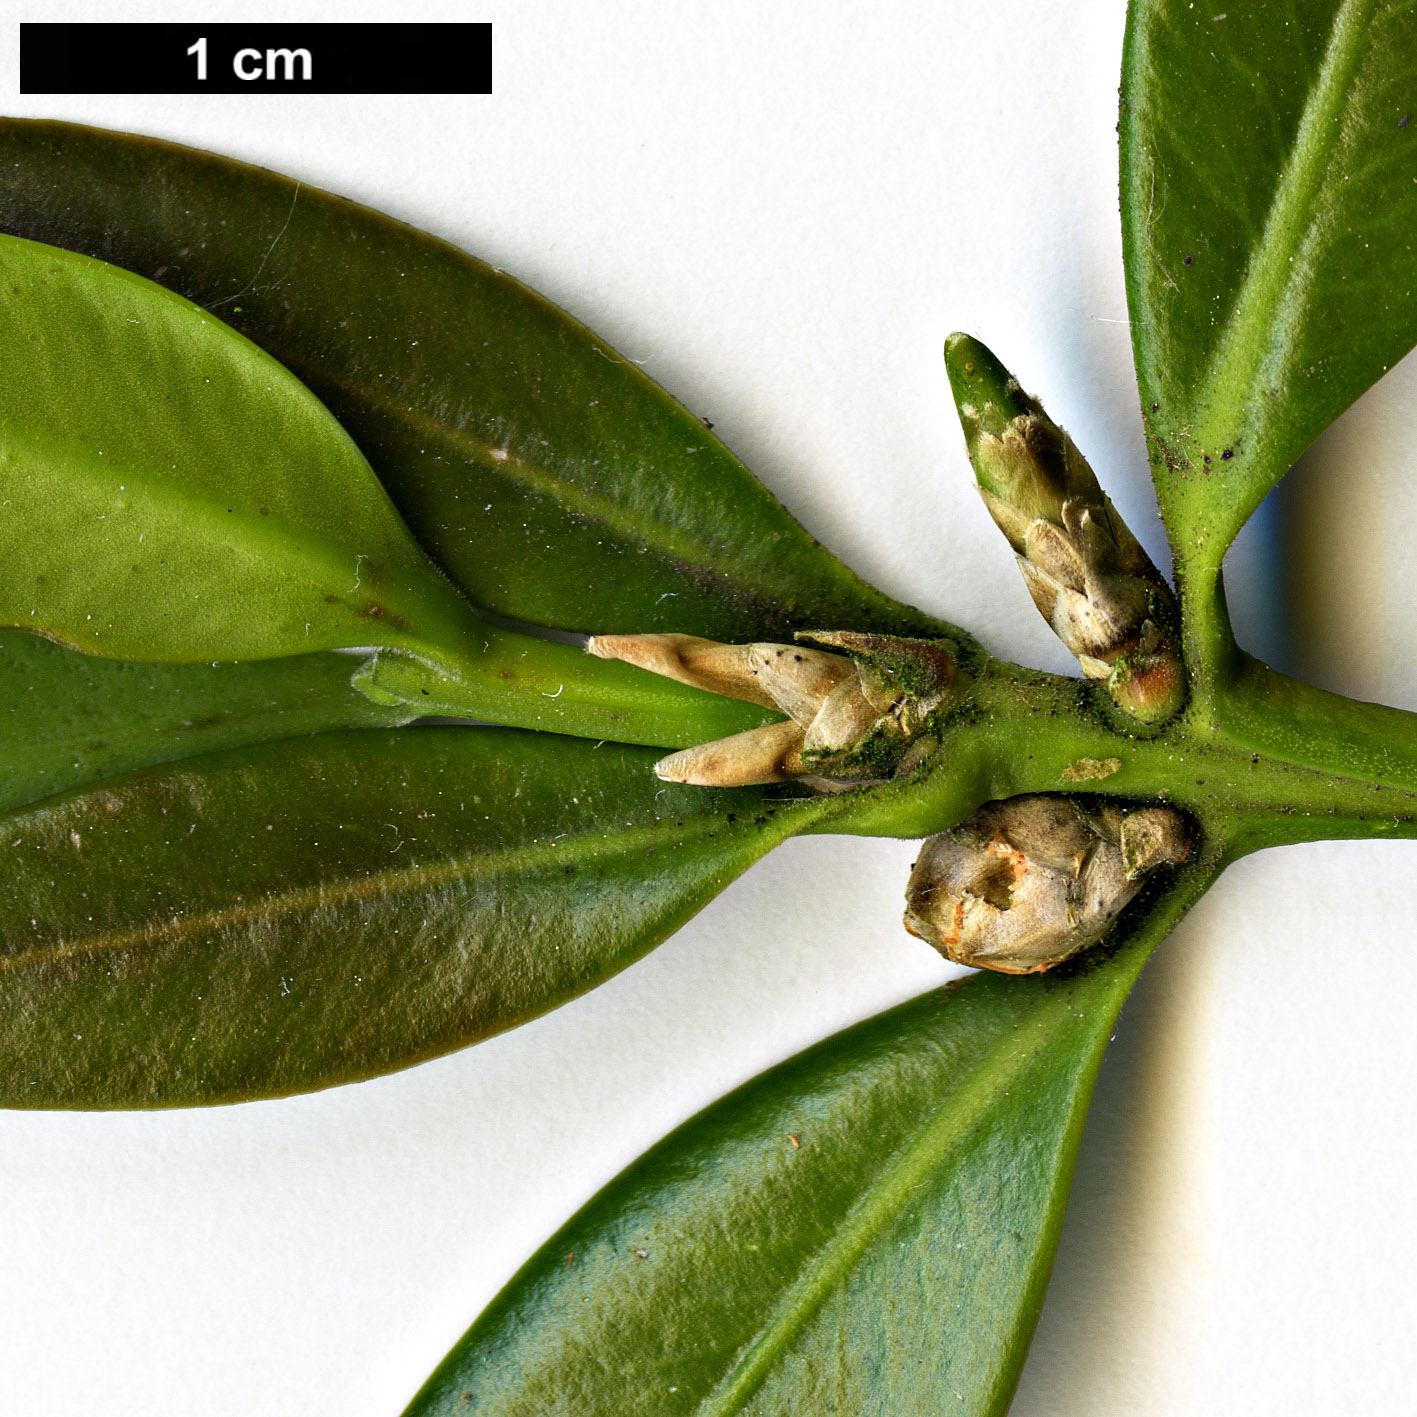 High resolution image: Family: Buxaceae - Genus: Buxus - Taxon: balearica